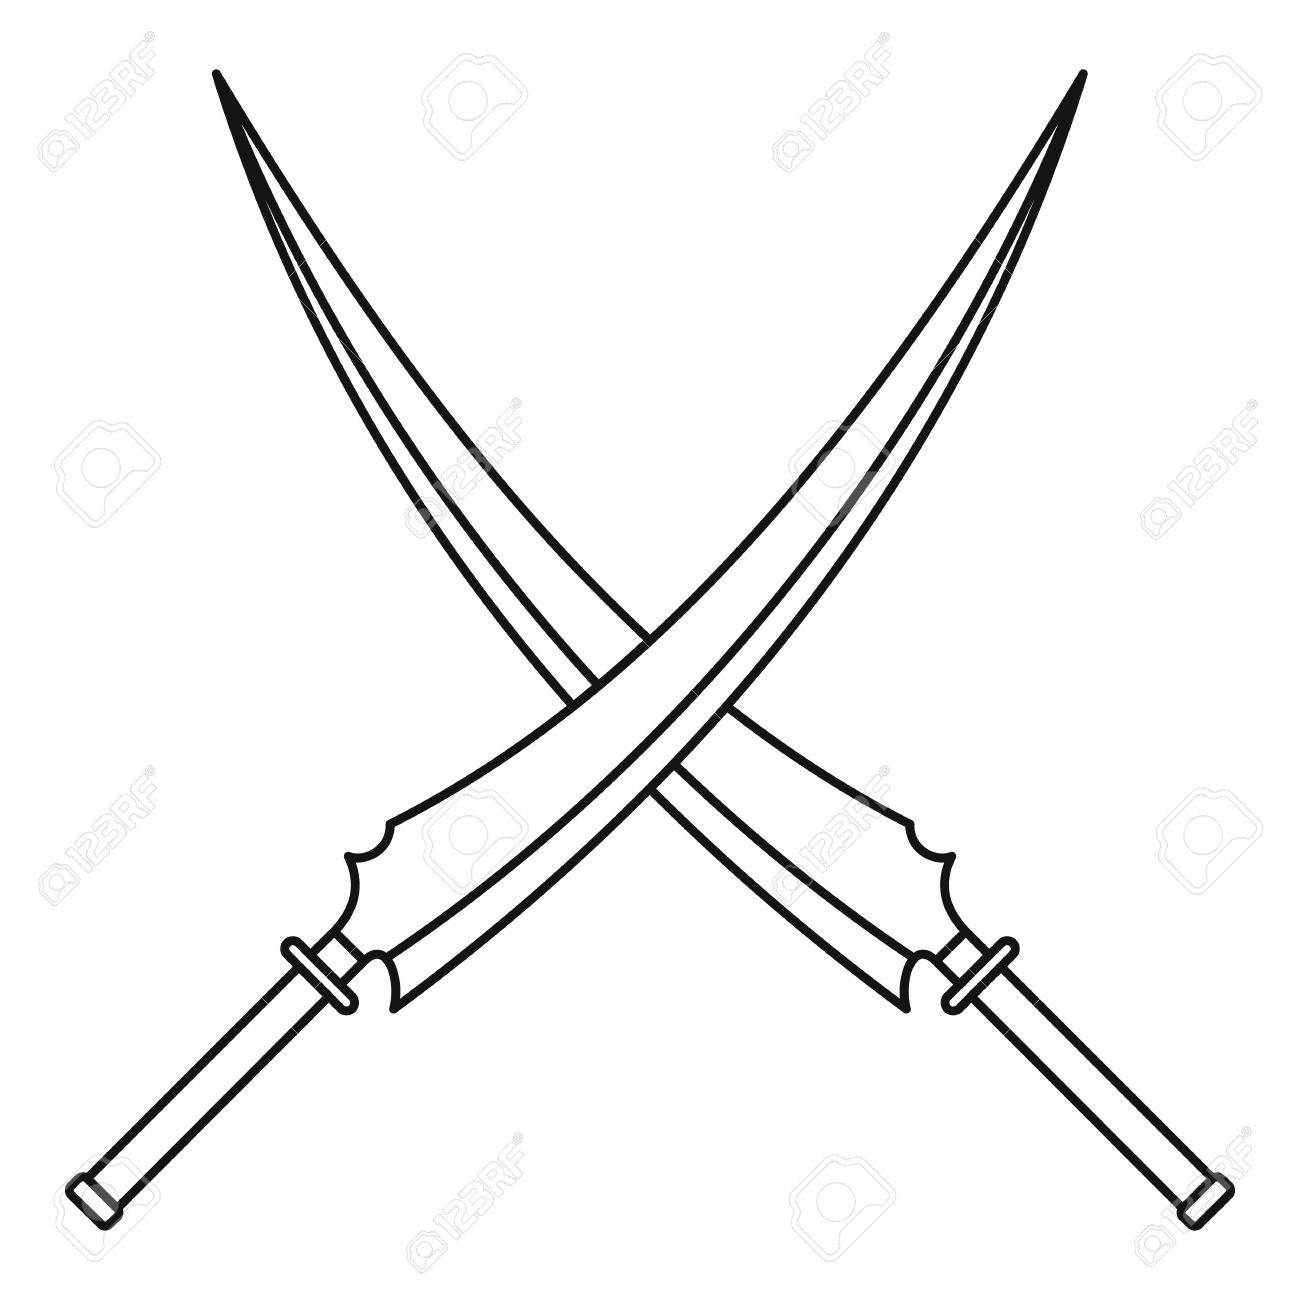 1300x1300 Japanese Samurai Swords Icon, Outline Style Royalty Free Cliparts